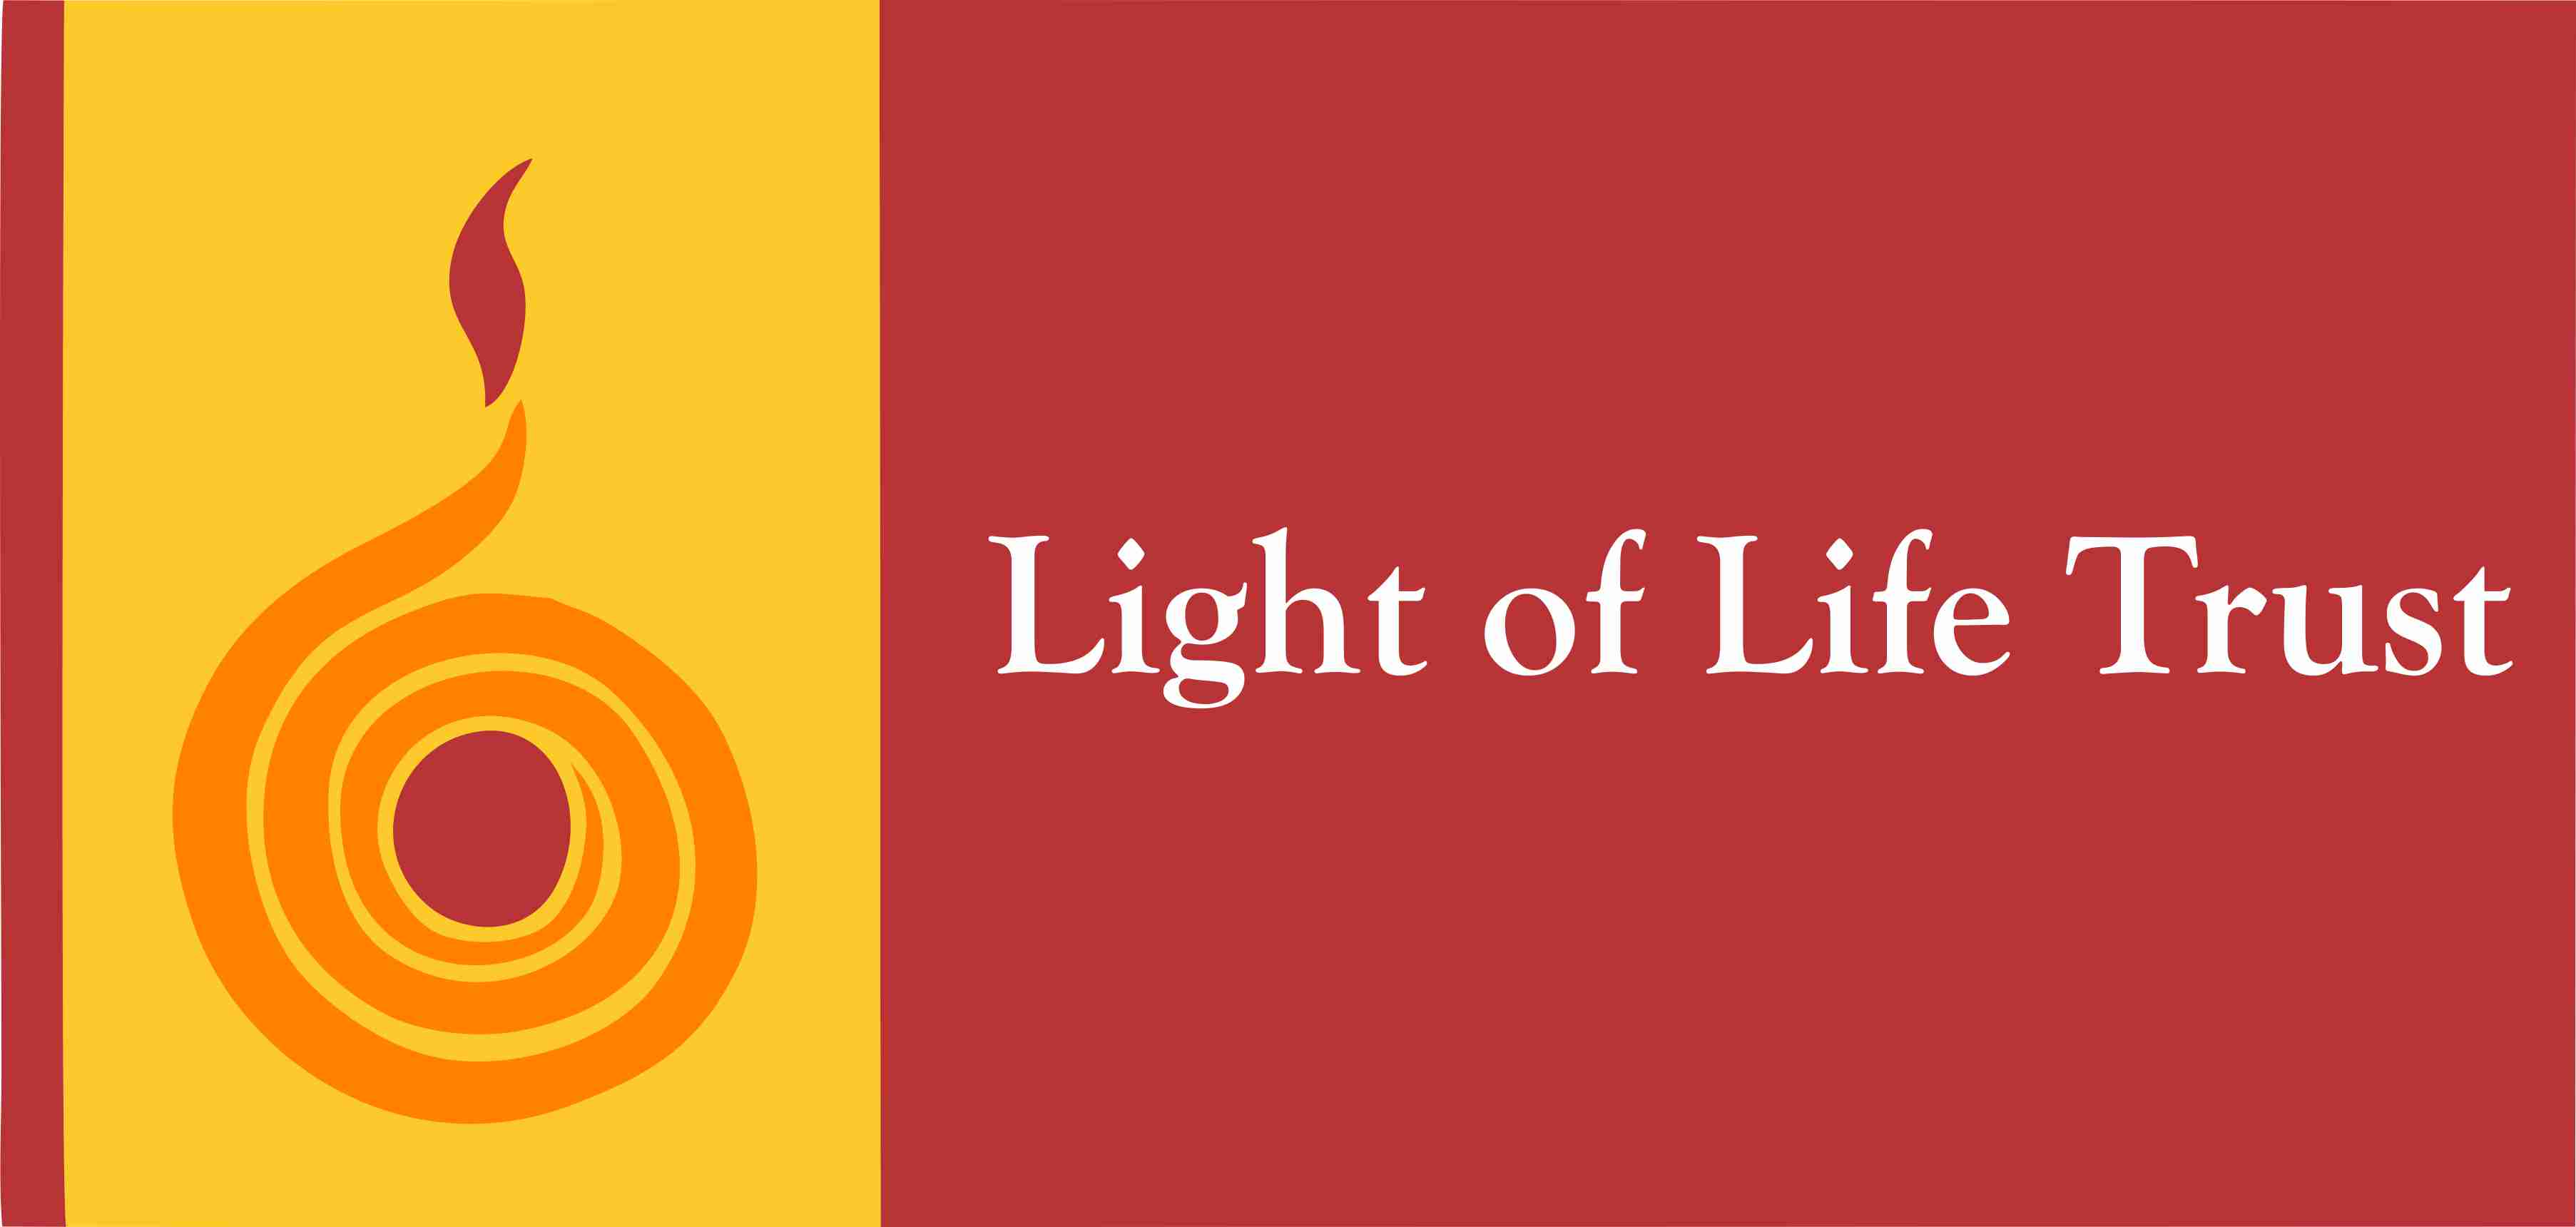 Light of Life Trust